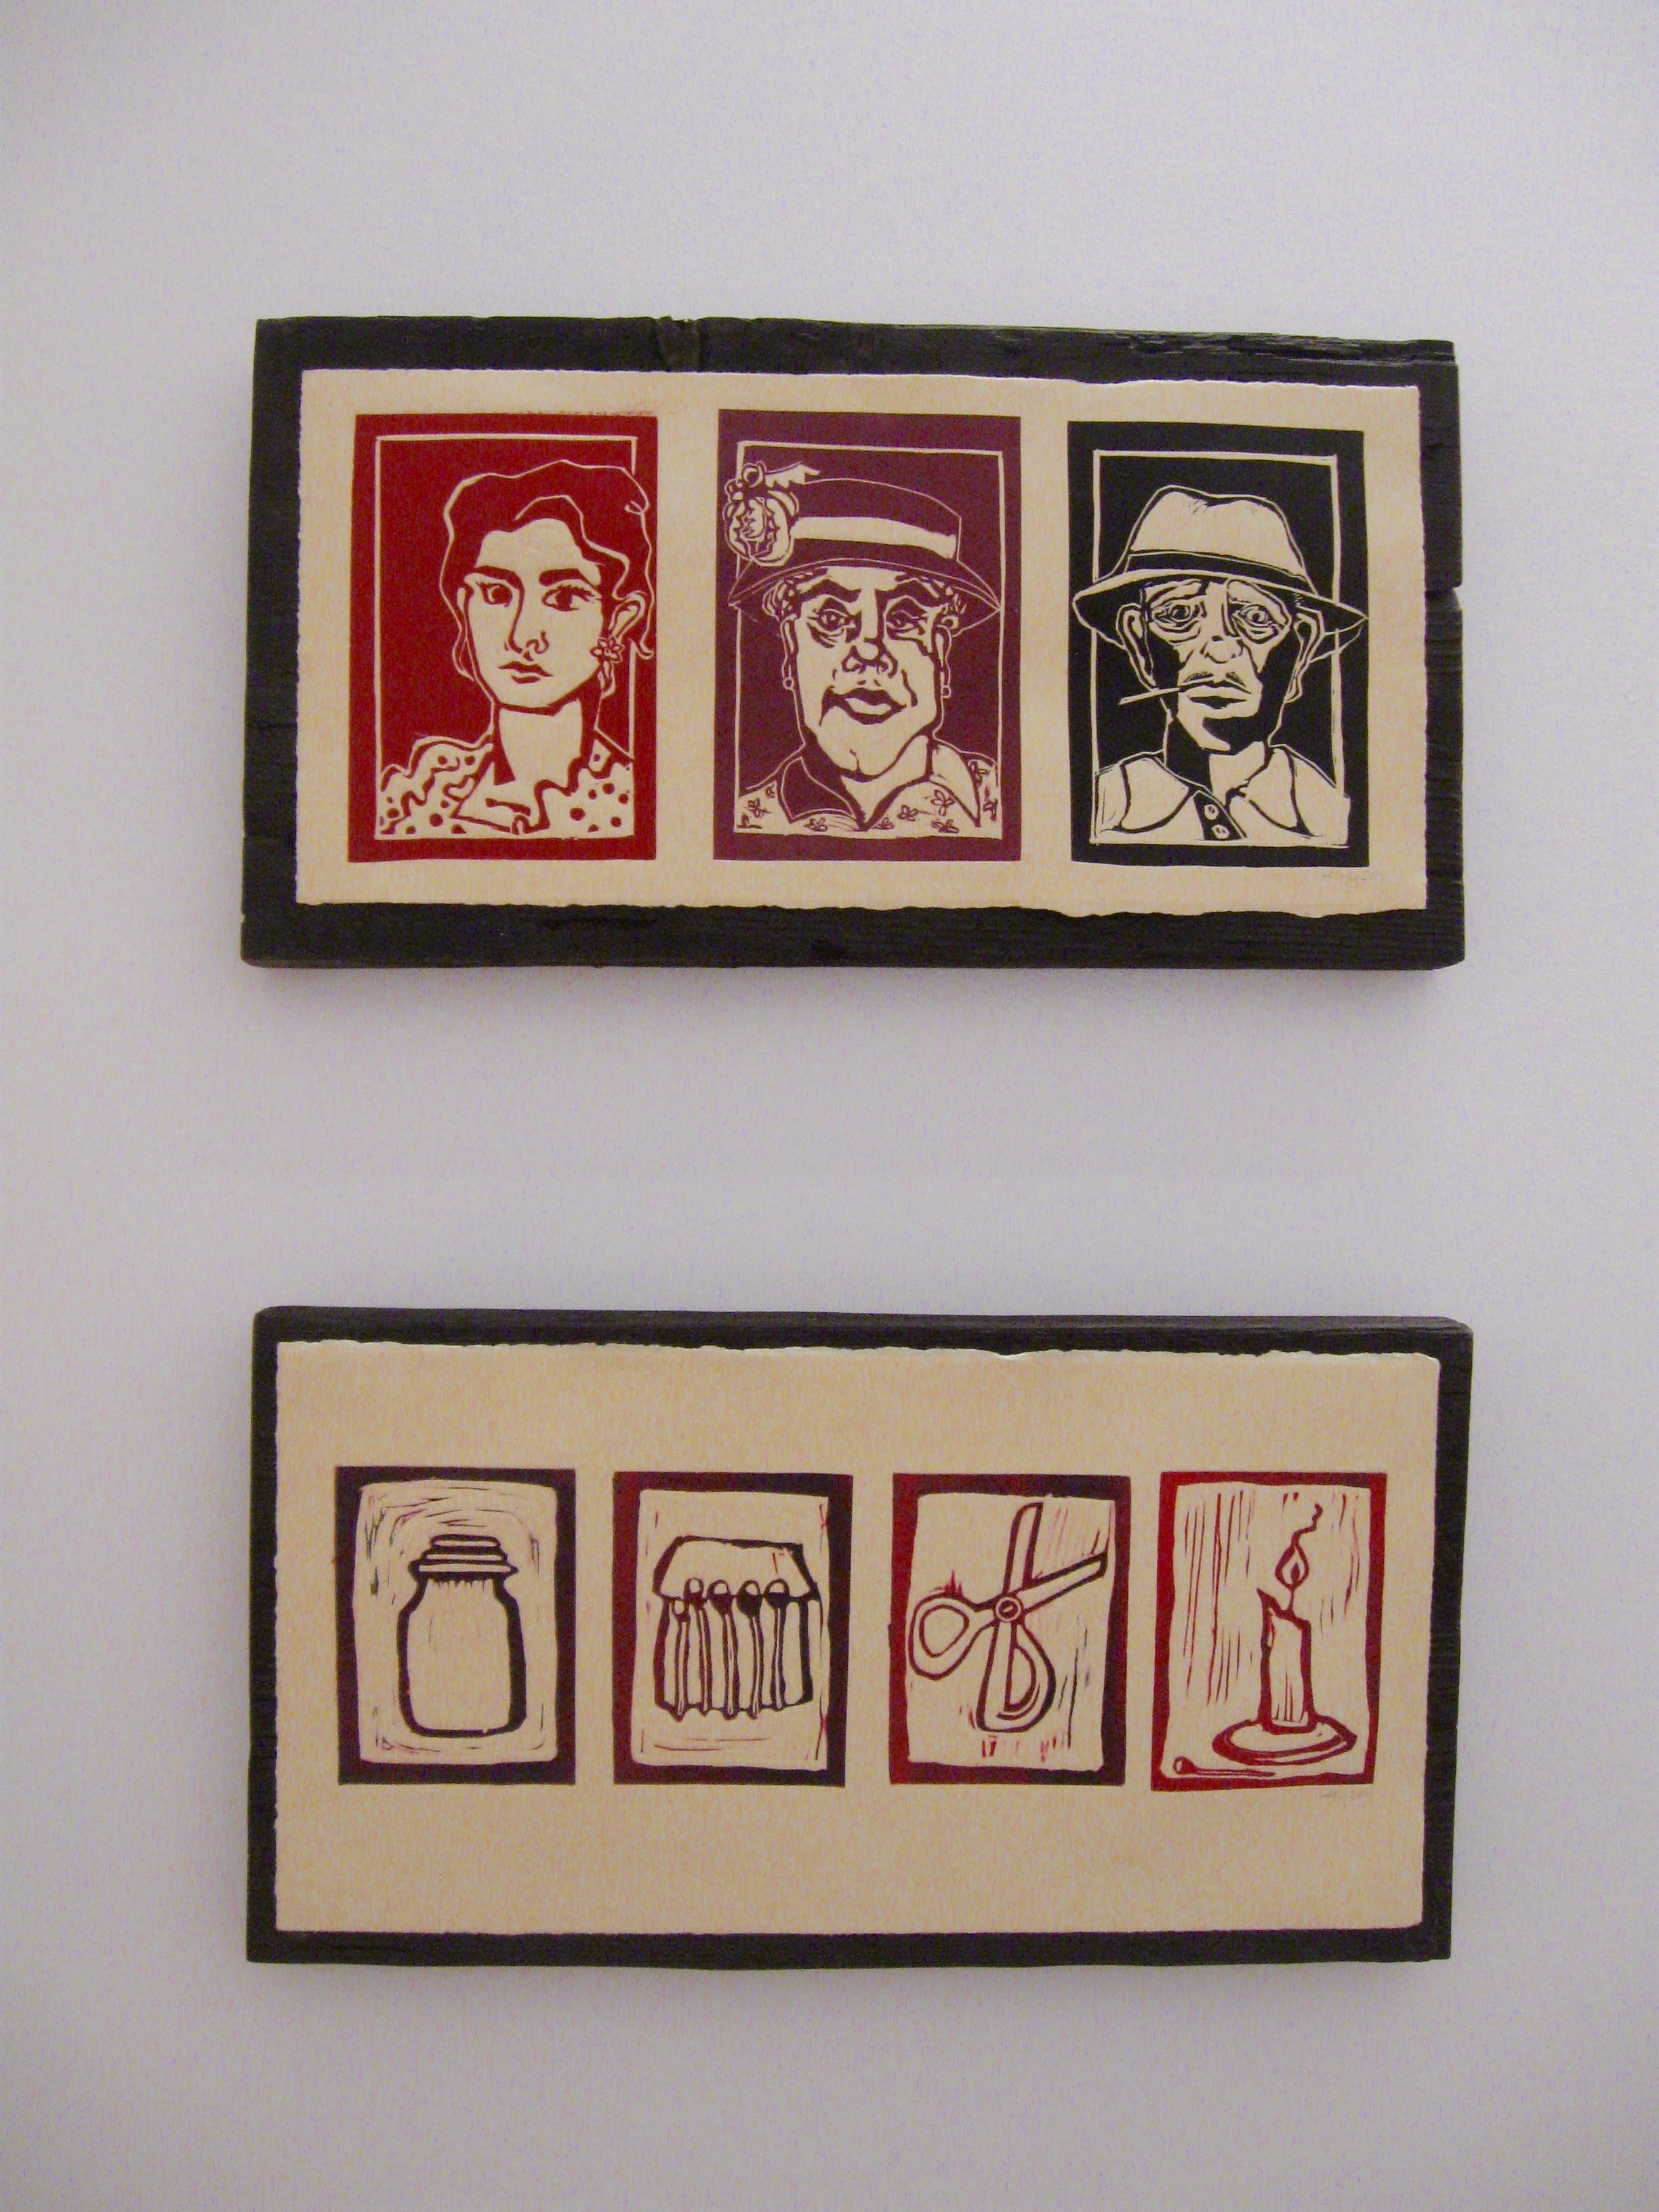 Relief print on wood, 2014